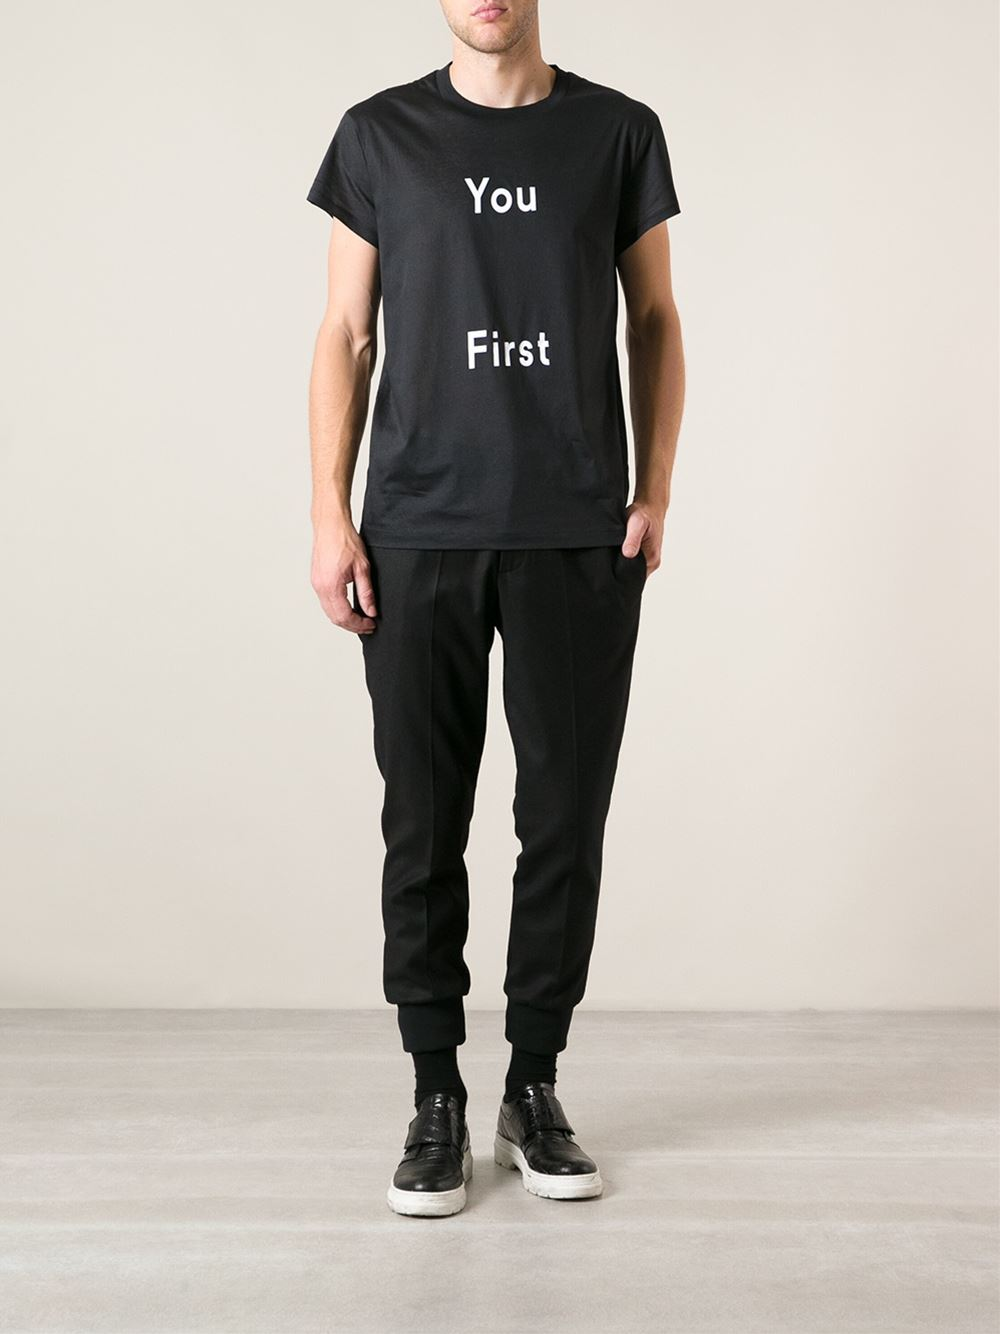 You First ACNE Studio cool shirt